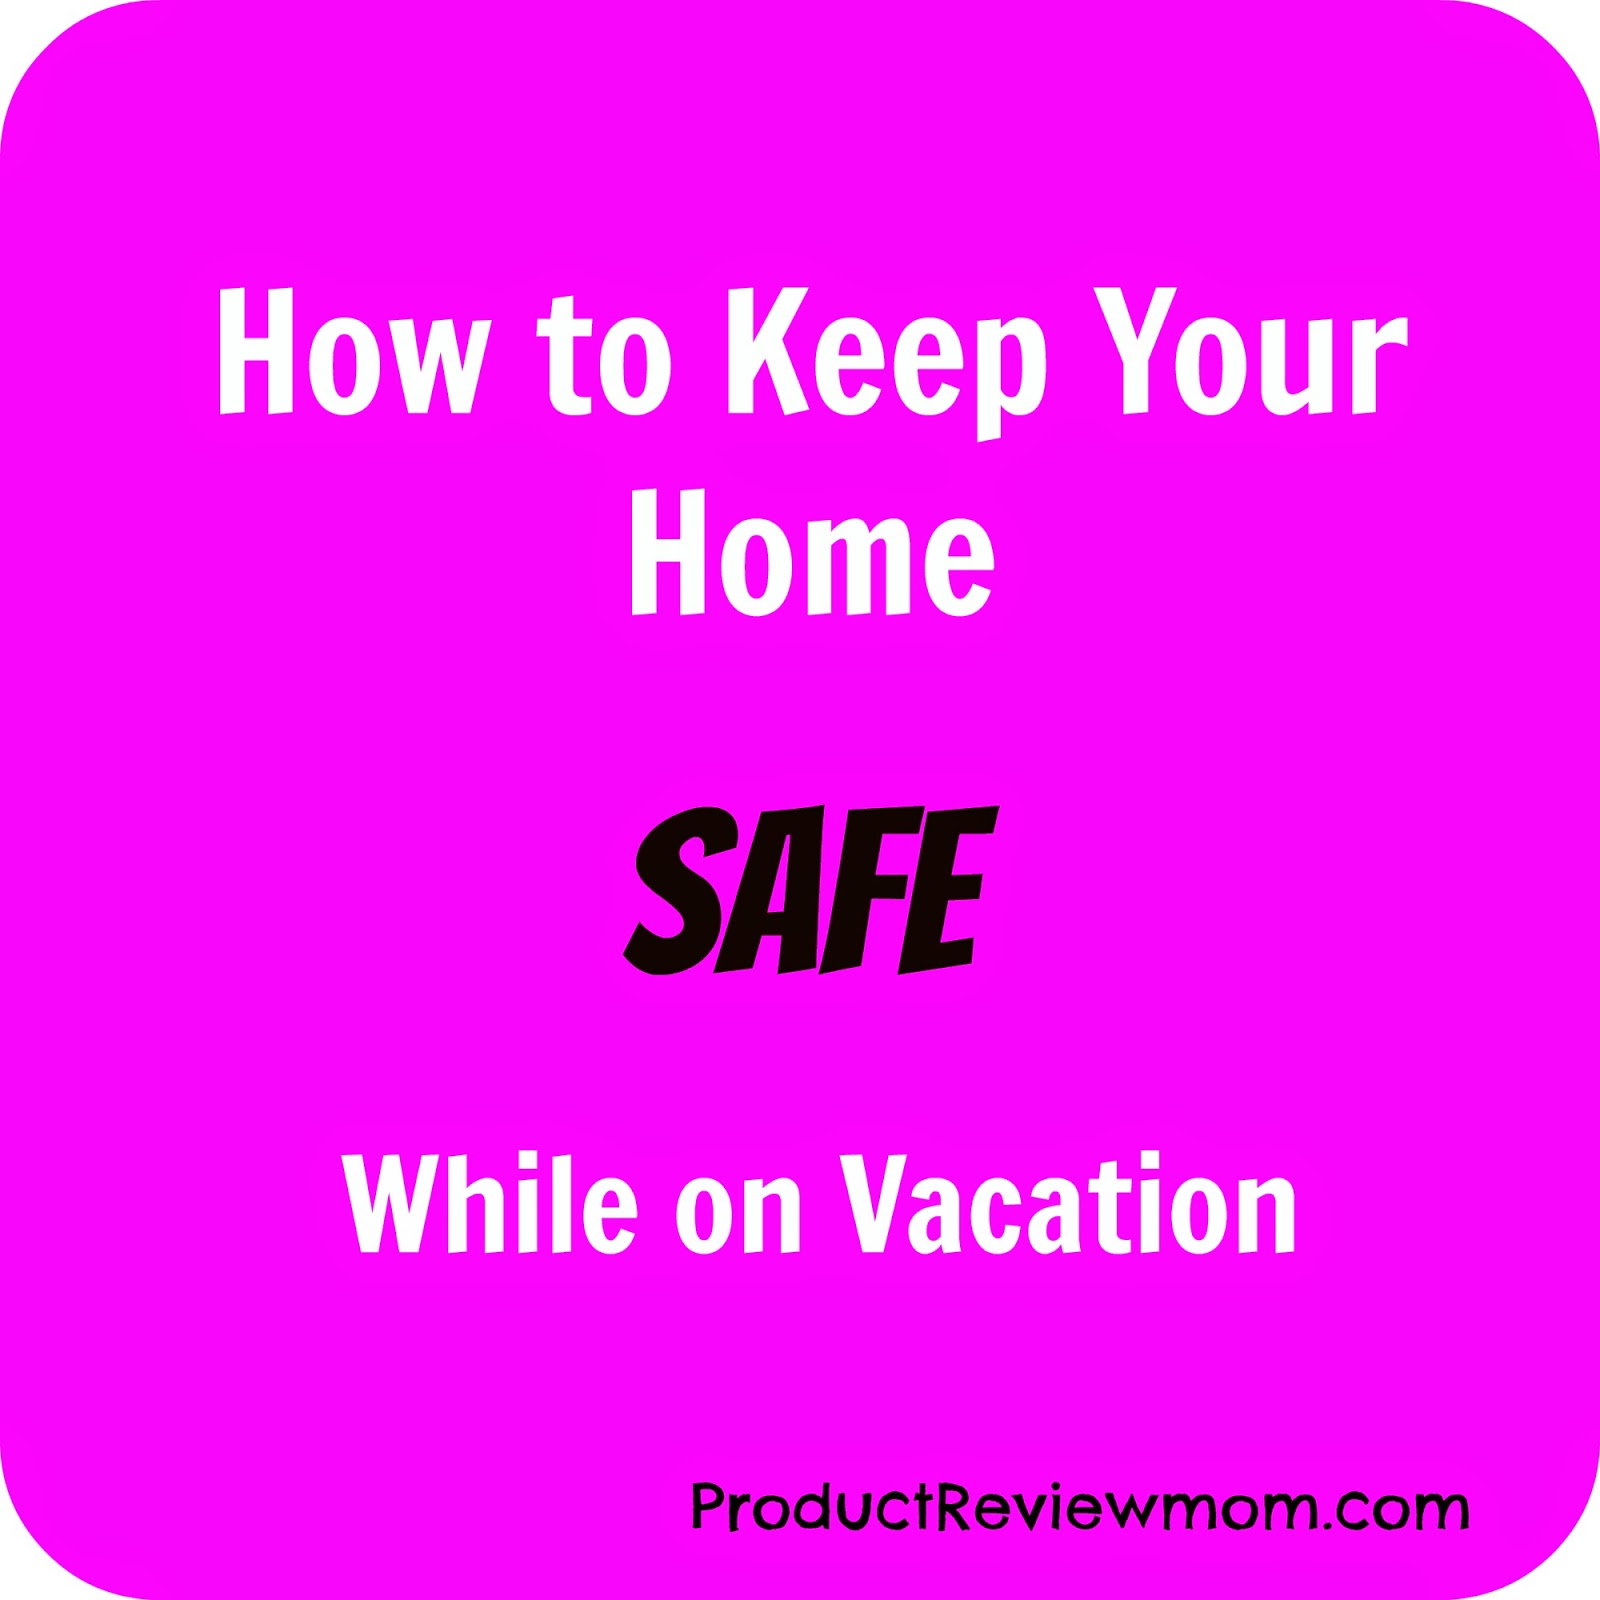 How to Keep Your Home Safe While on Vacation (Summer Blog Series) via ProductReviewMom.com